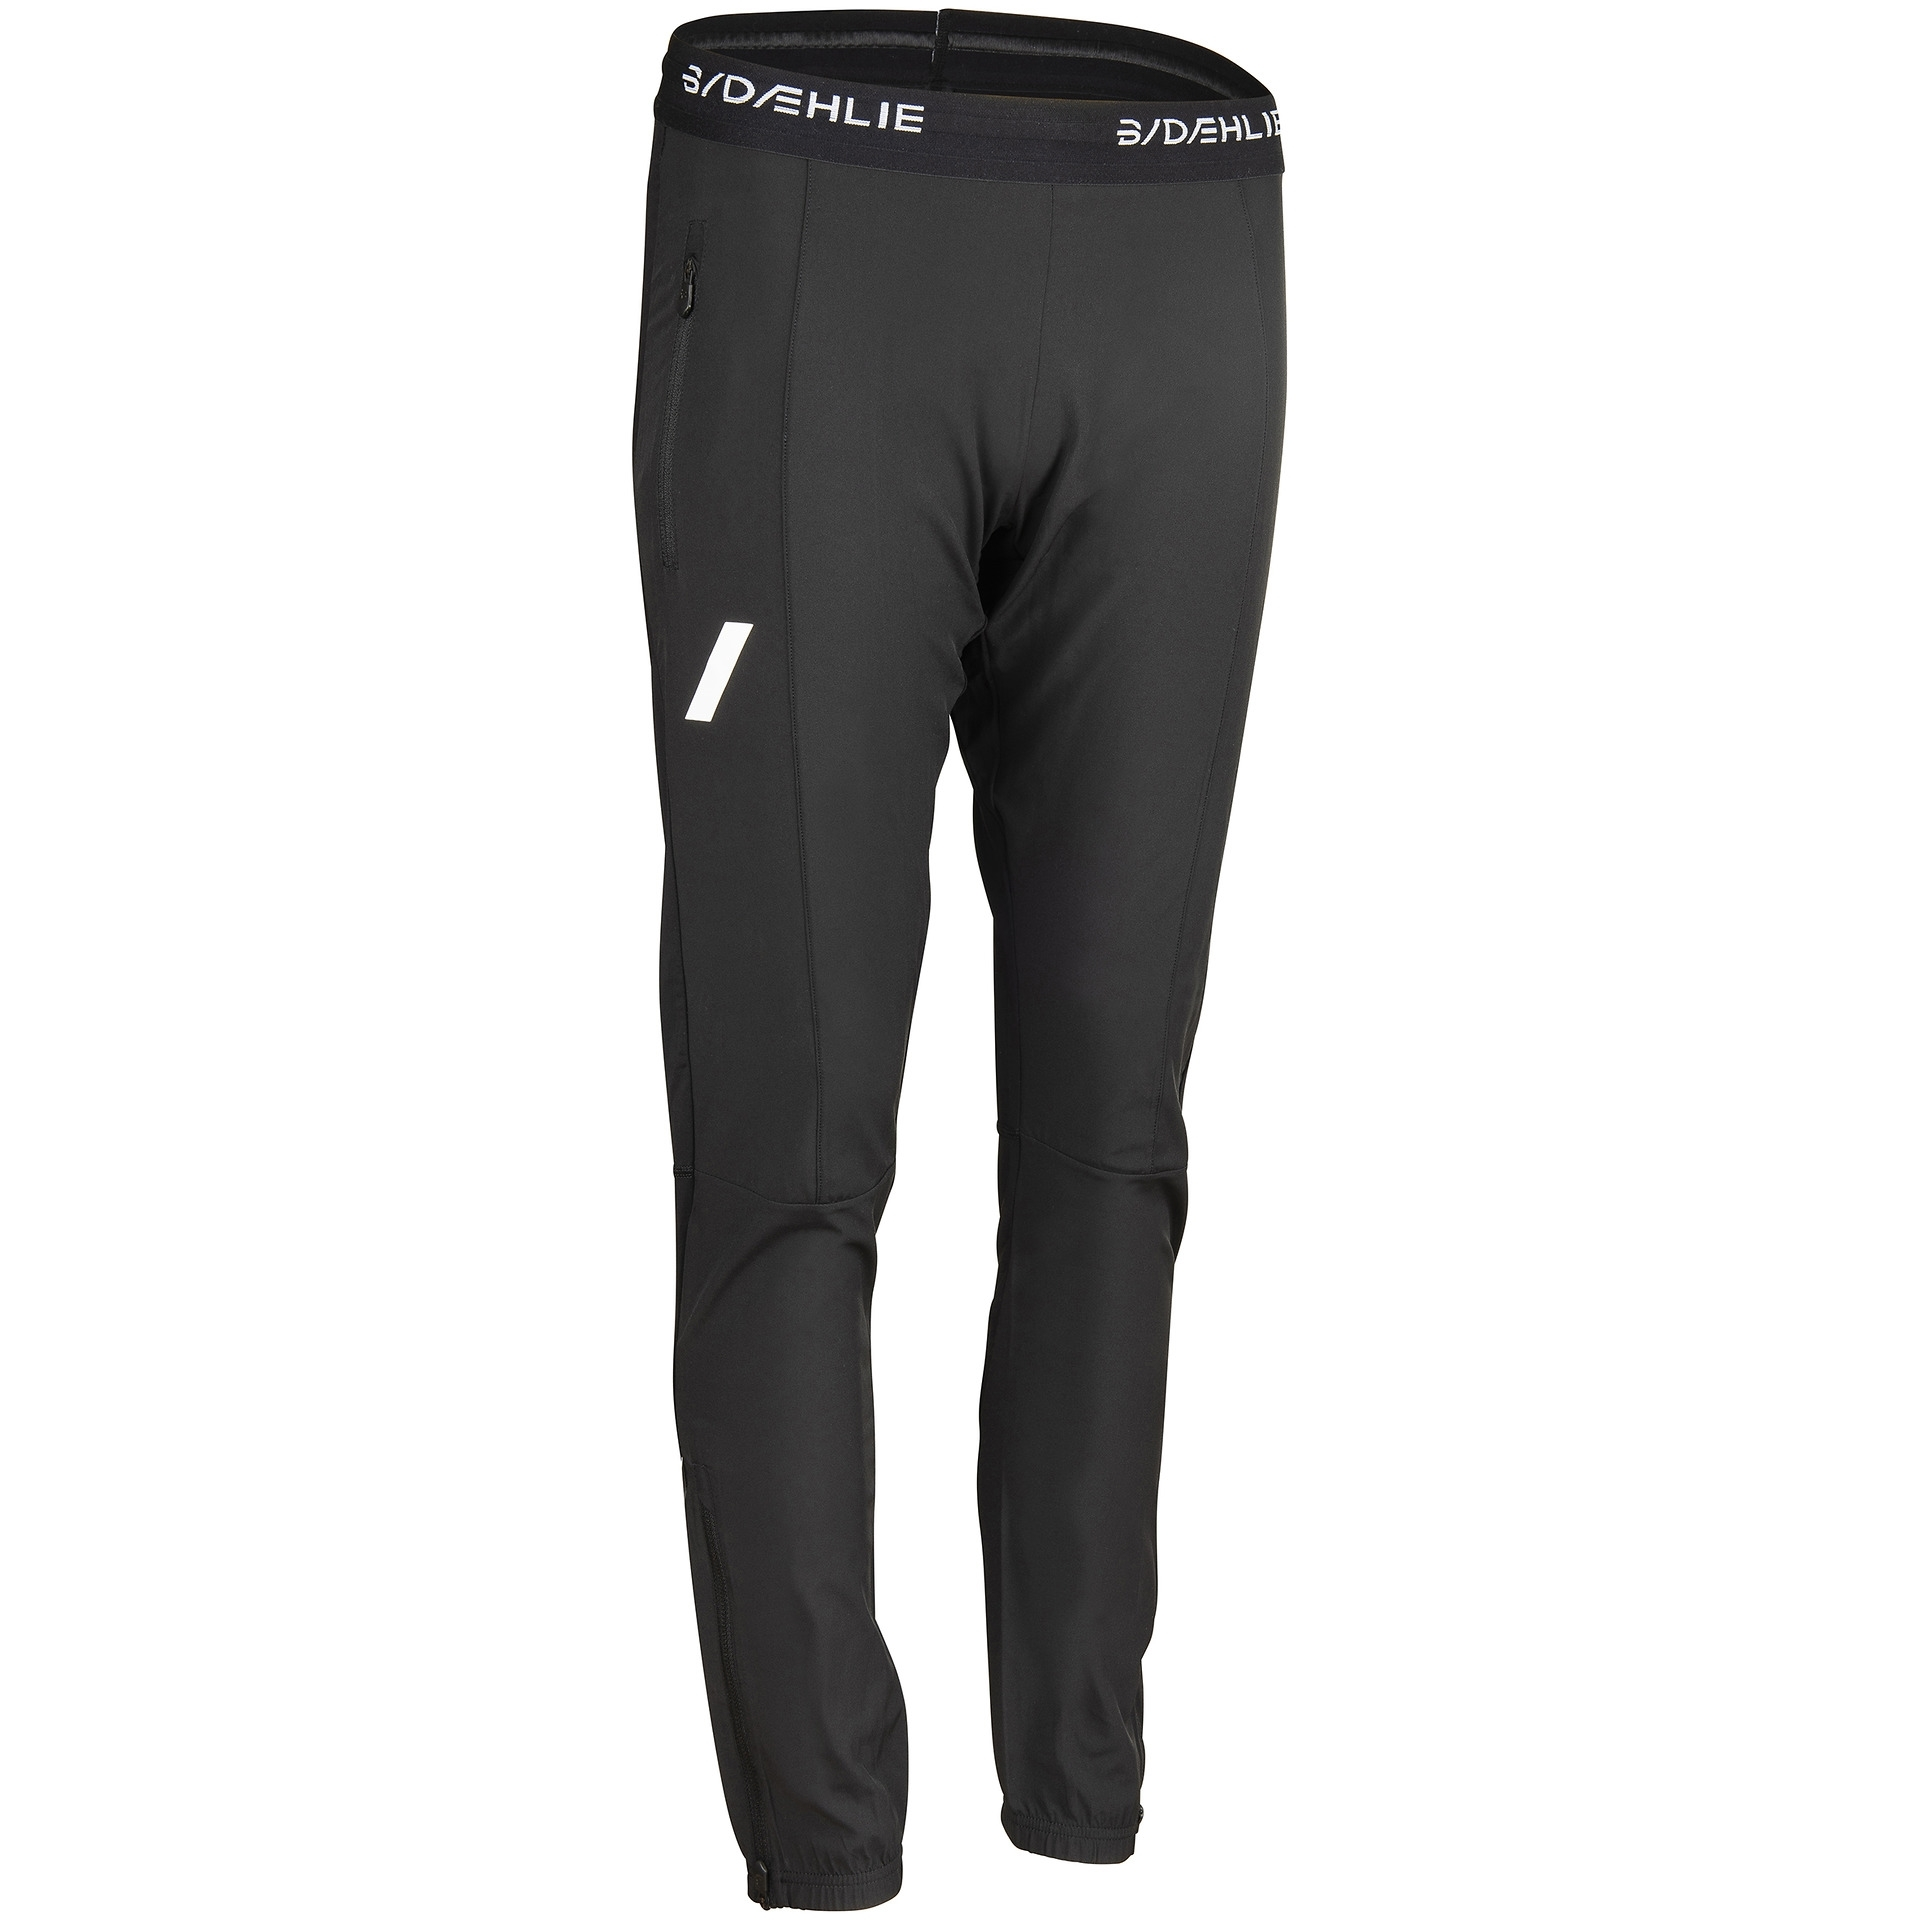 Bilde av Dæhlie pants air wmn 332213 990R black